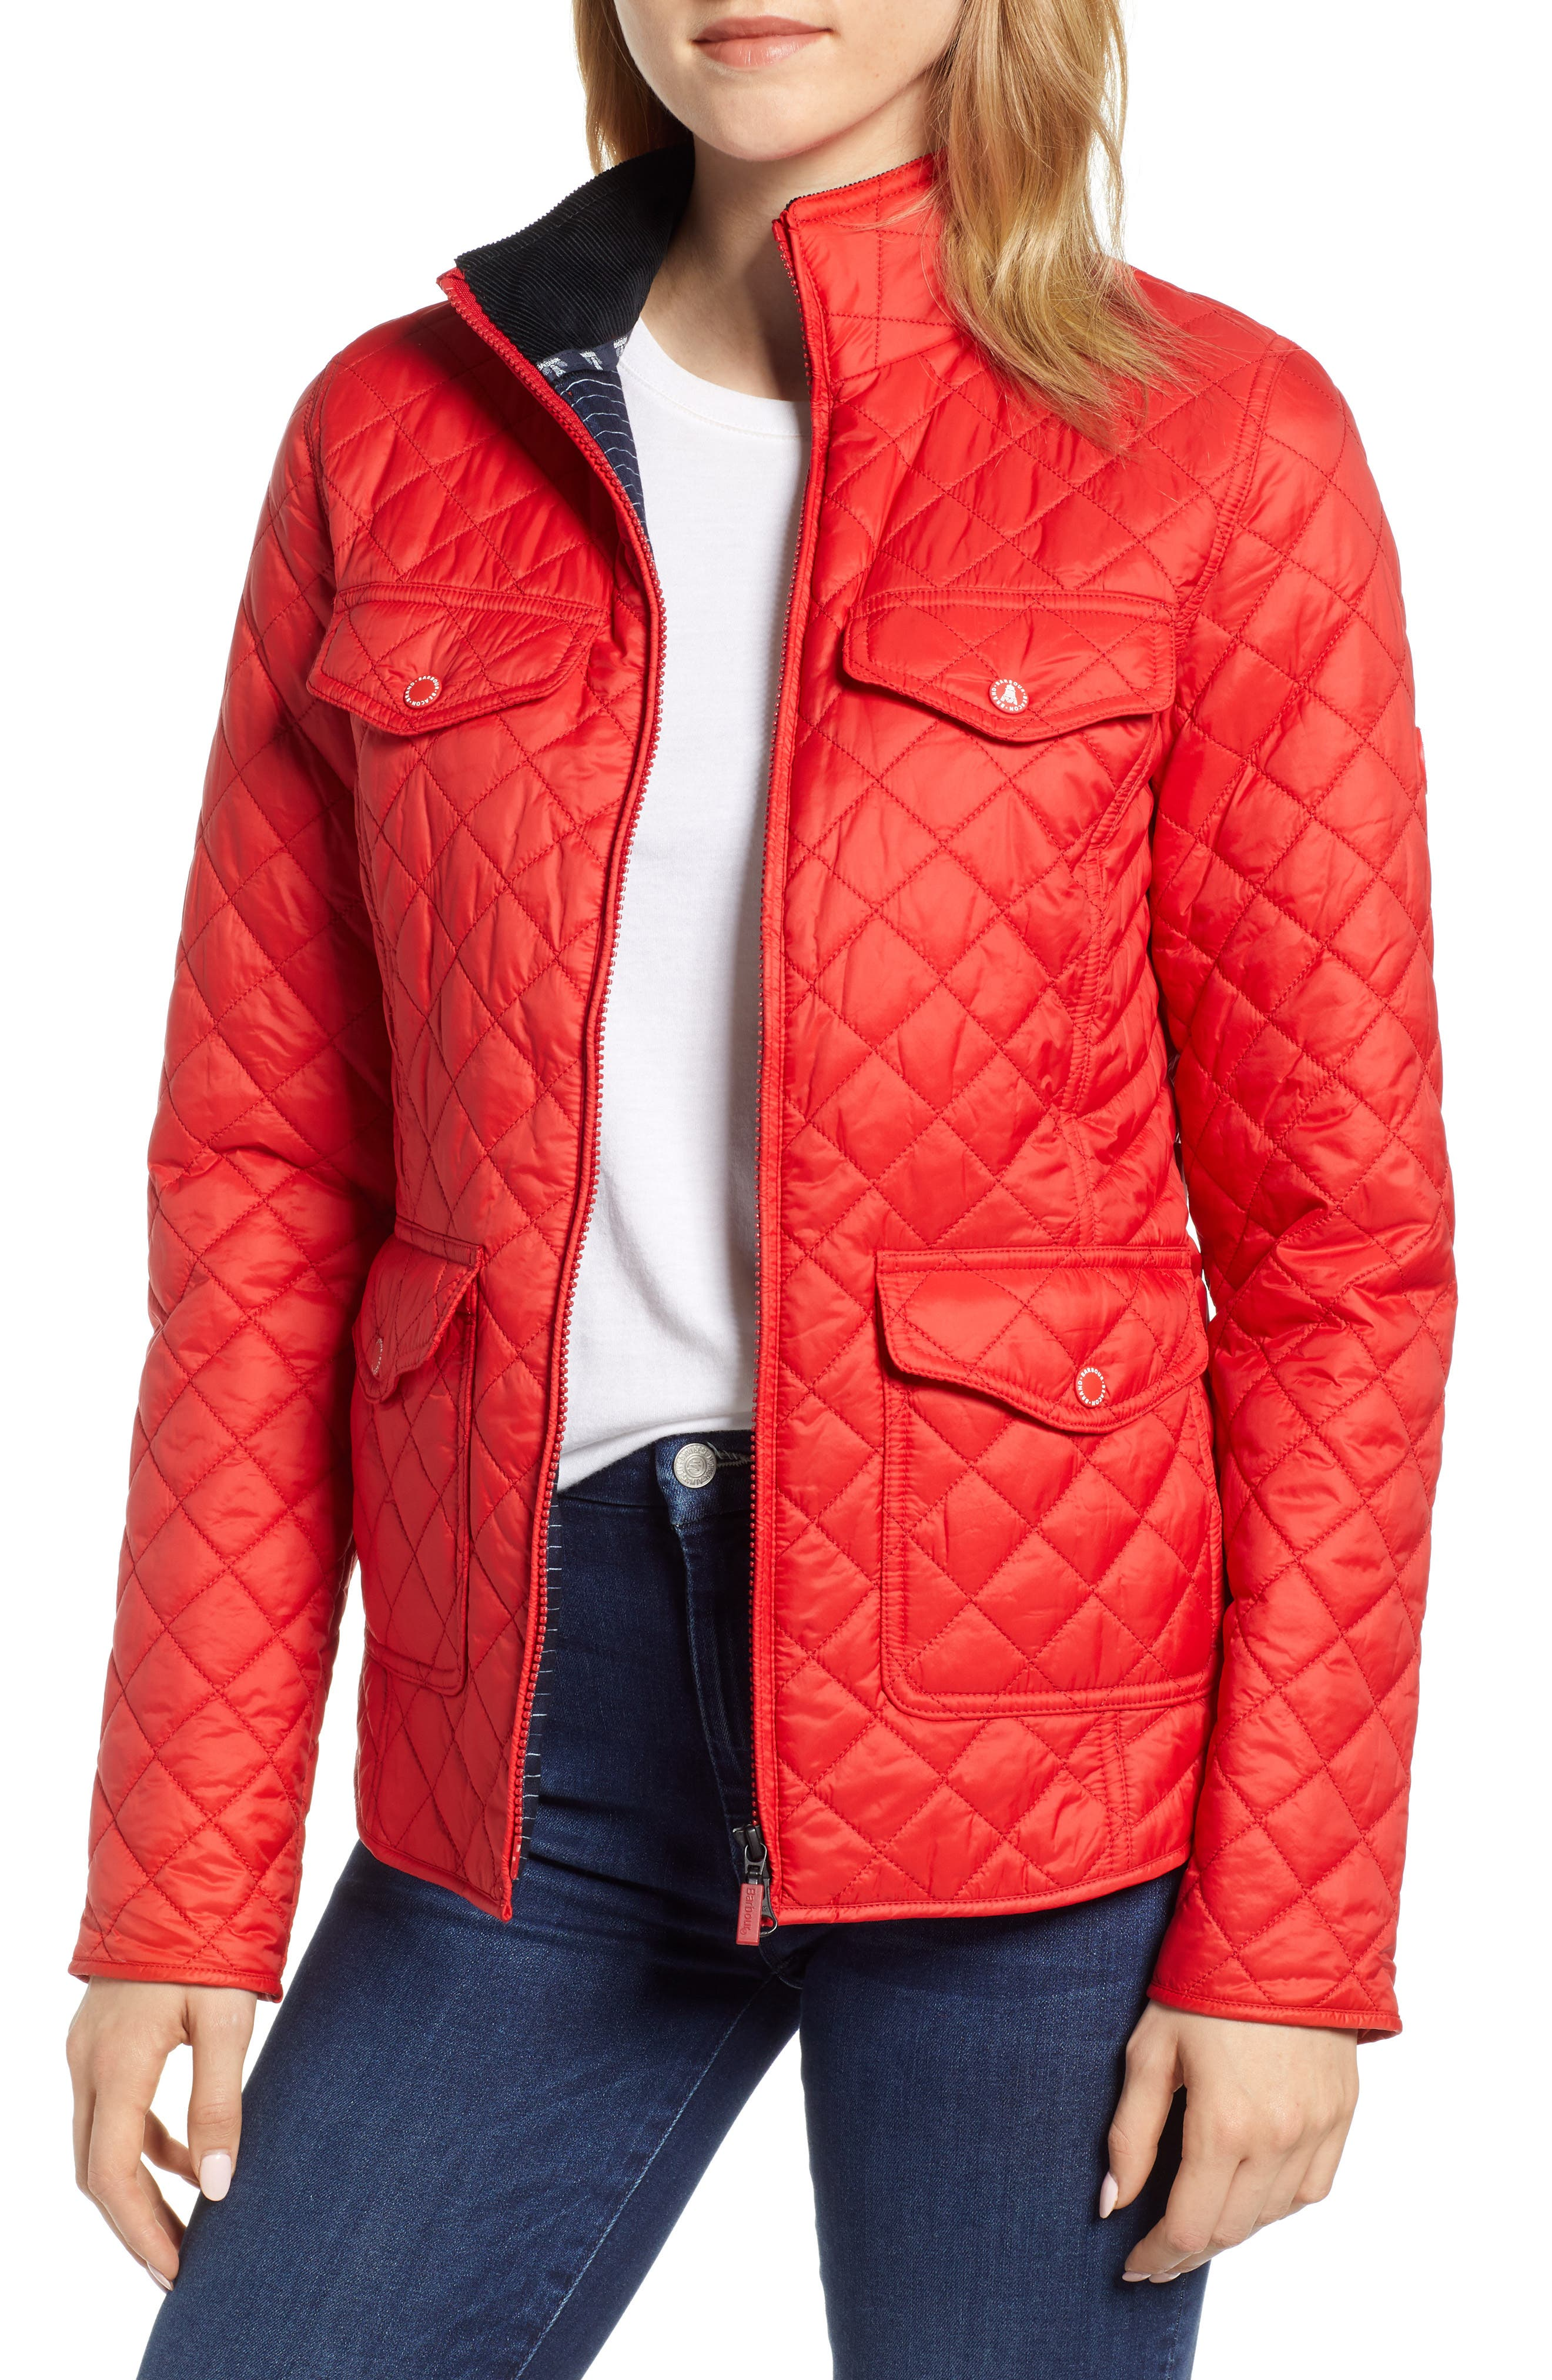 Barbour Sailboat Quilted Jacket, US / 10 UK - Red